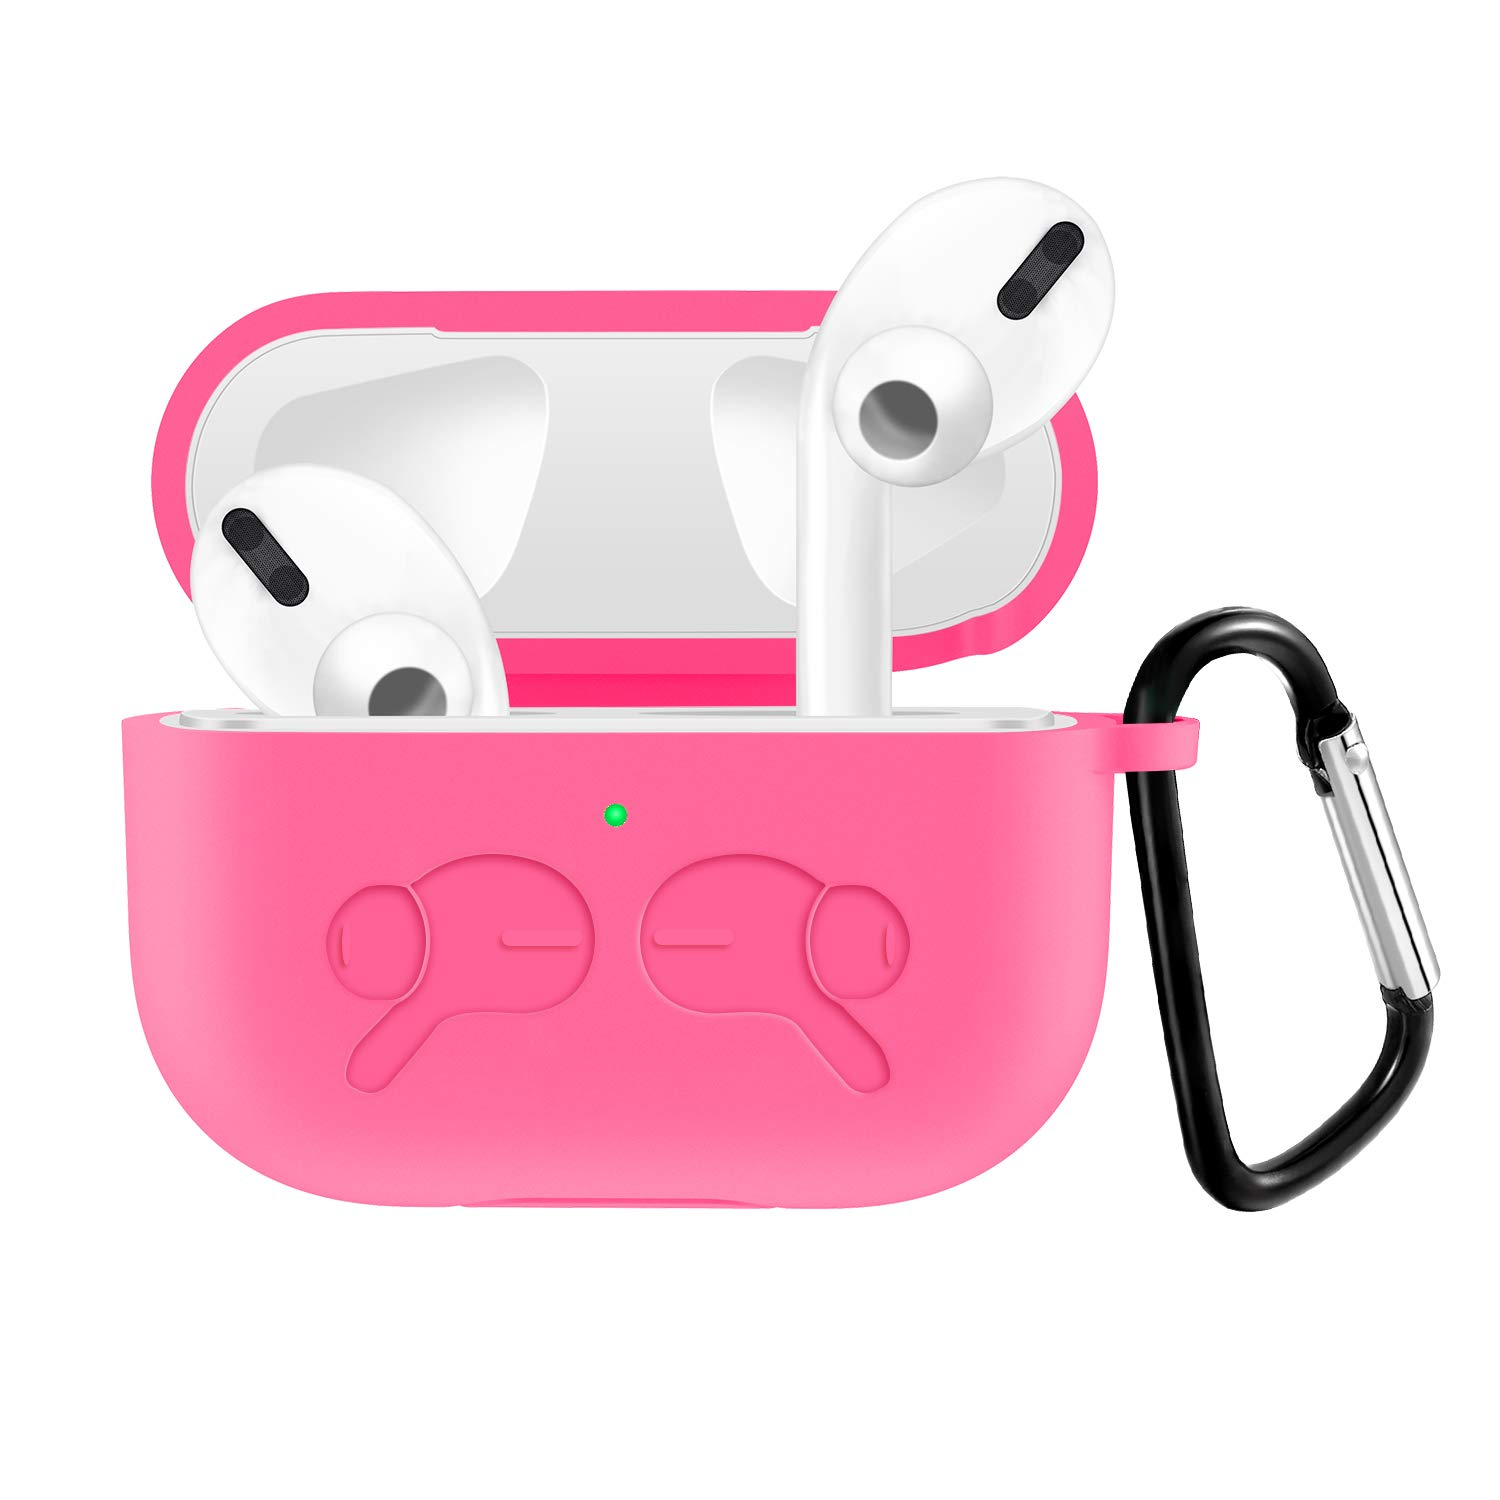 JuQBanke Silicone Cover Compatible for Airpods Pro Case, Full Protective Visible Front LED Upgrade Bounce Shock Proof Case with Keychain Compatible for AirPods Pro Charging Case, Hot Pink